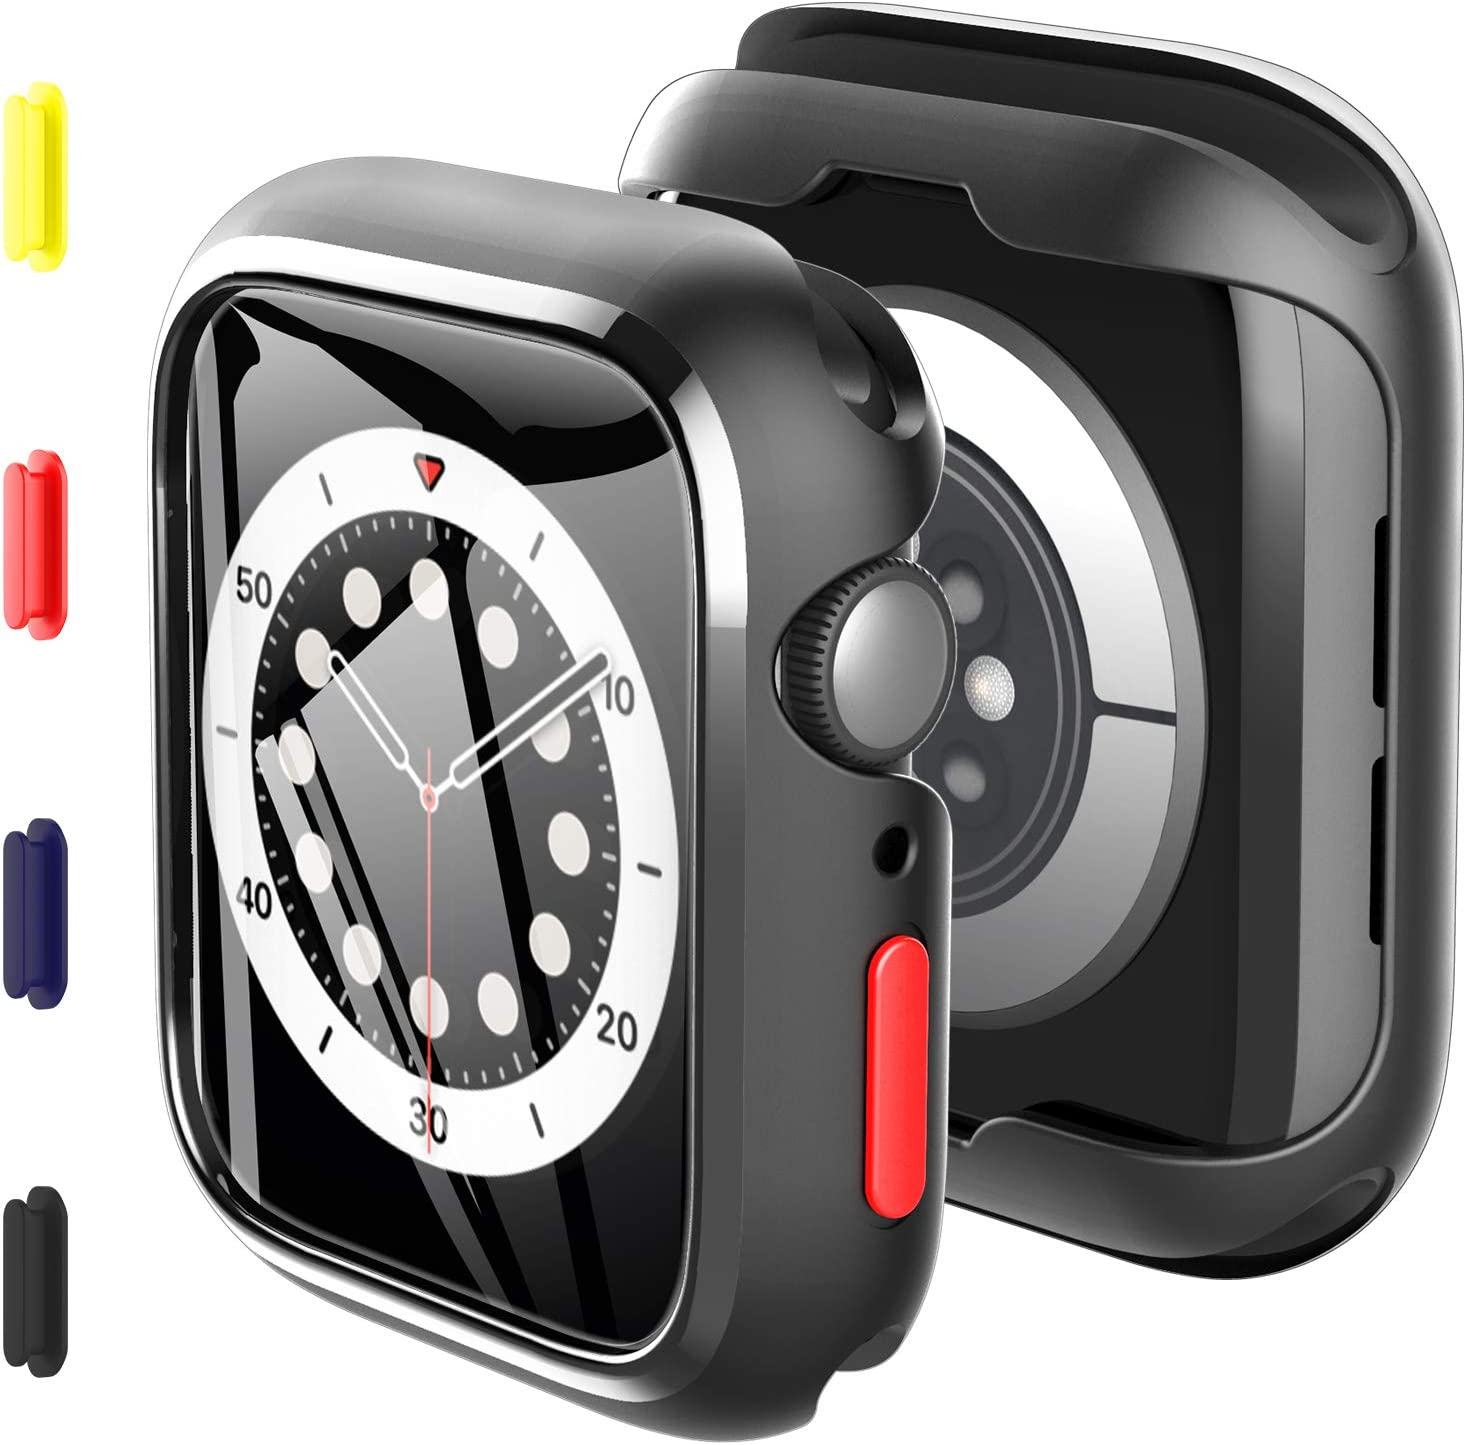 KKM2PackCasebulitinTemperedGlassCompatiblewithApplewatchSeries6Series5Series444mm,ReplaceableFour-ColoredButtons,Ultra-thinSiliconeShell,All-roundProtectiveCover-Black